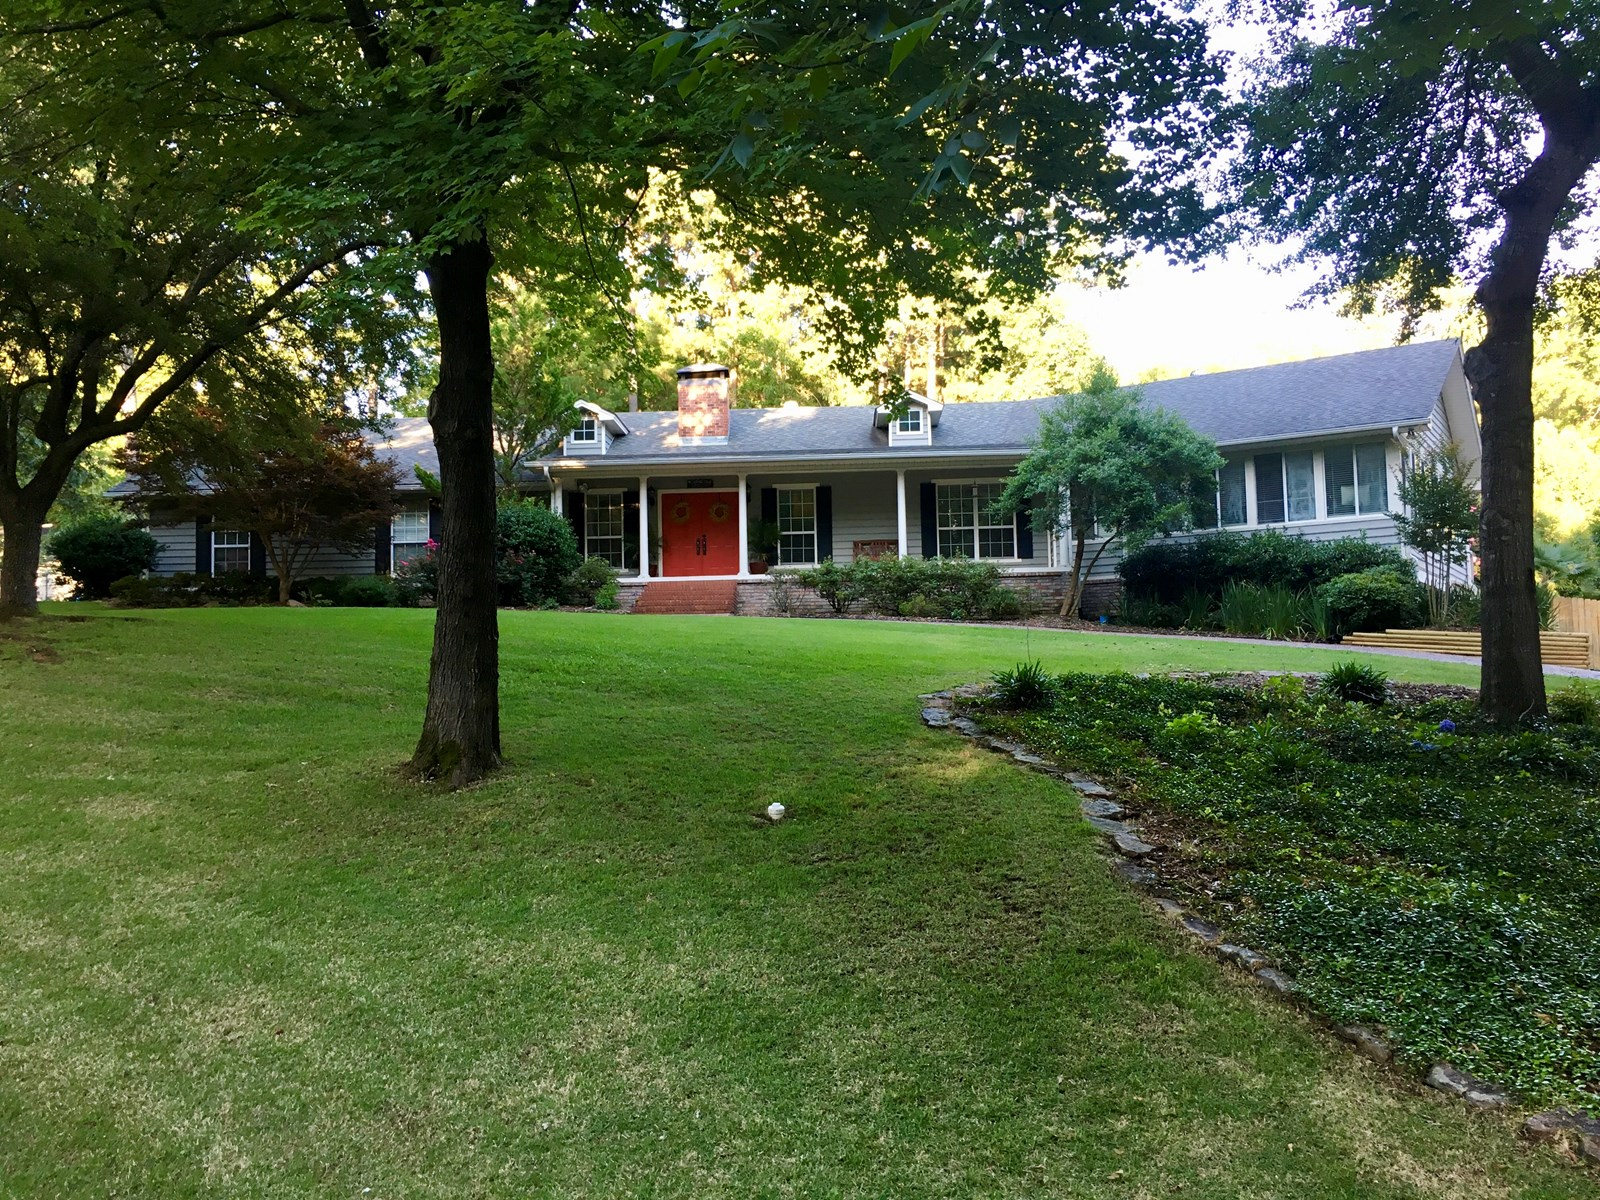 Large Home with Pool for sale in Arkadelphia, Arkansas!